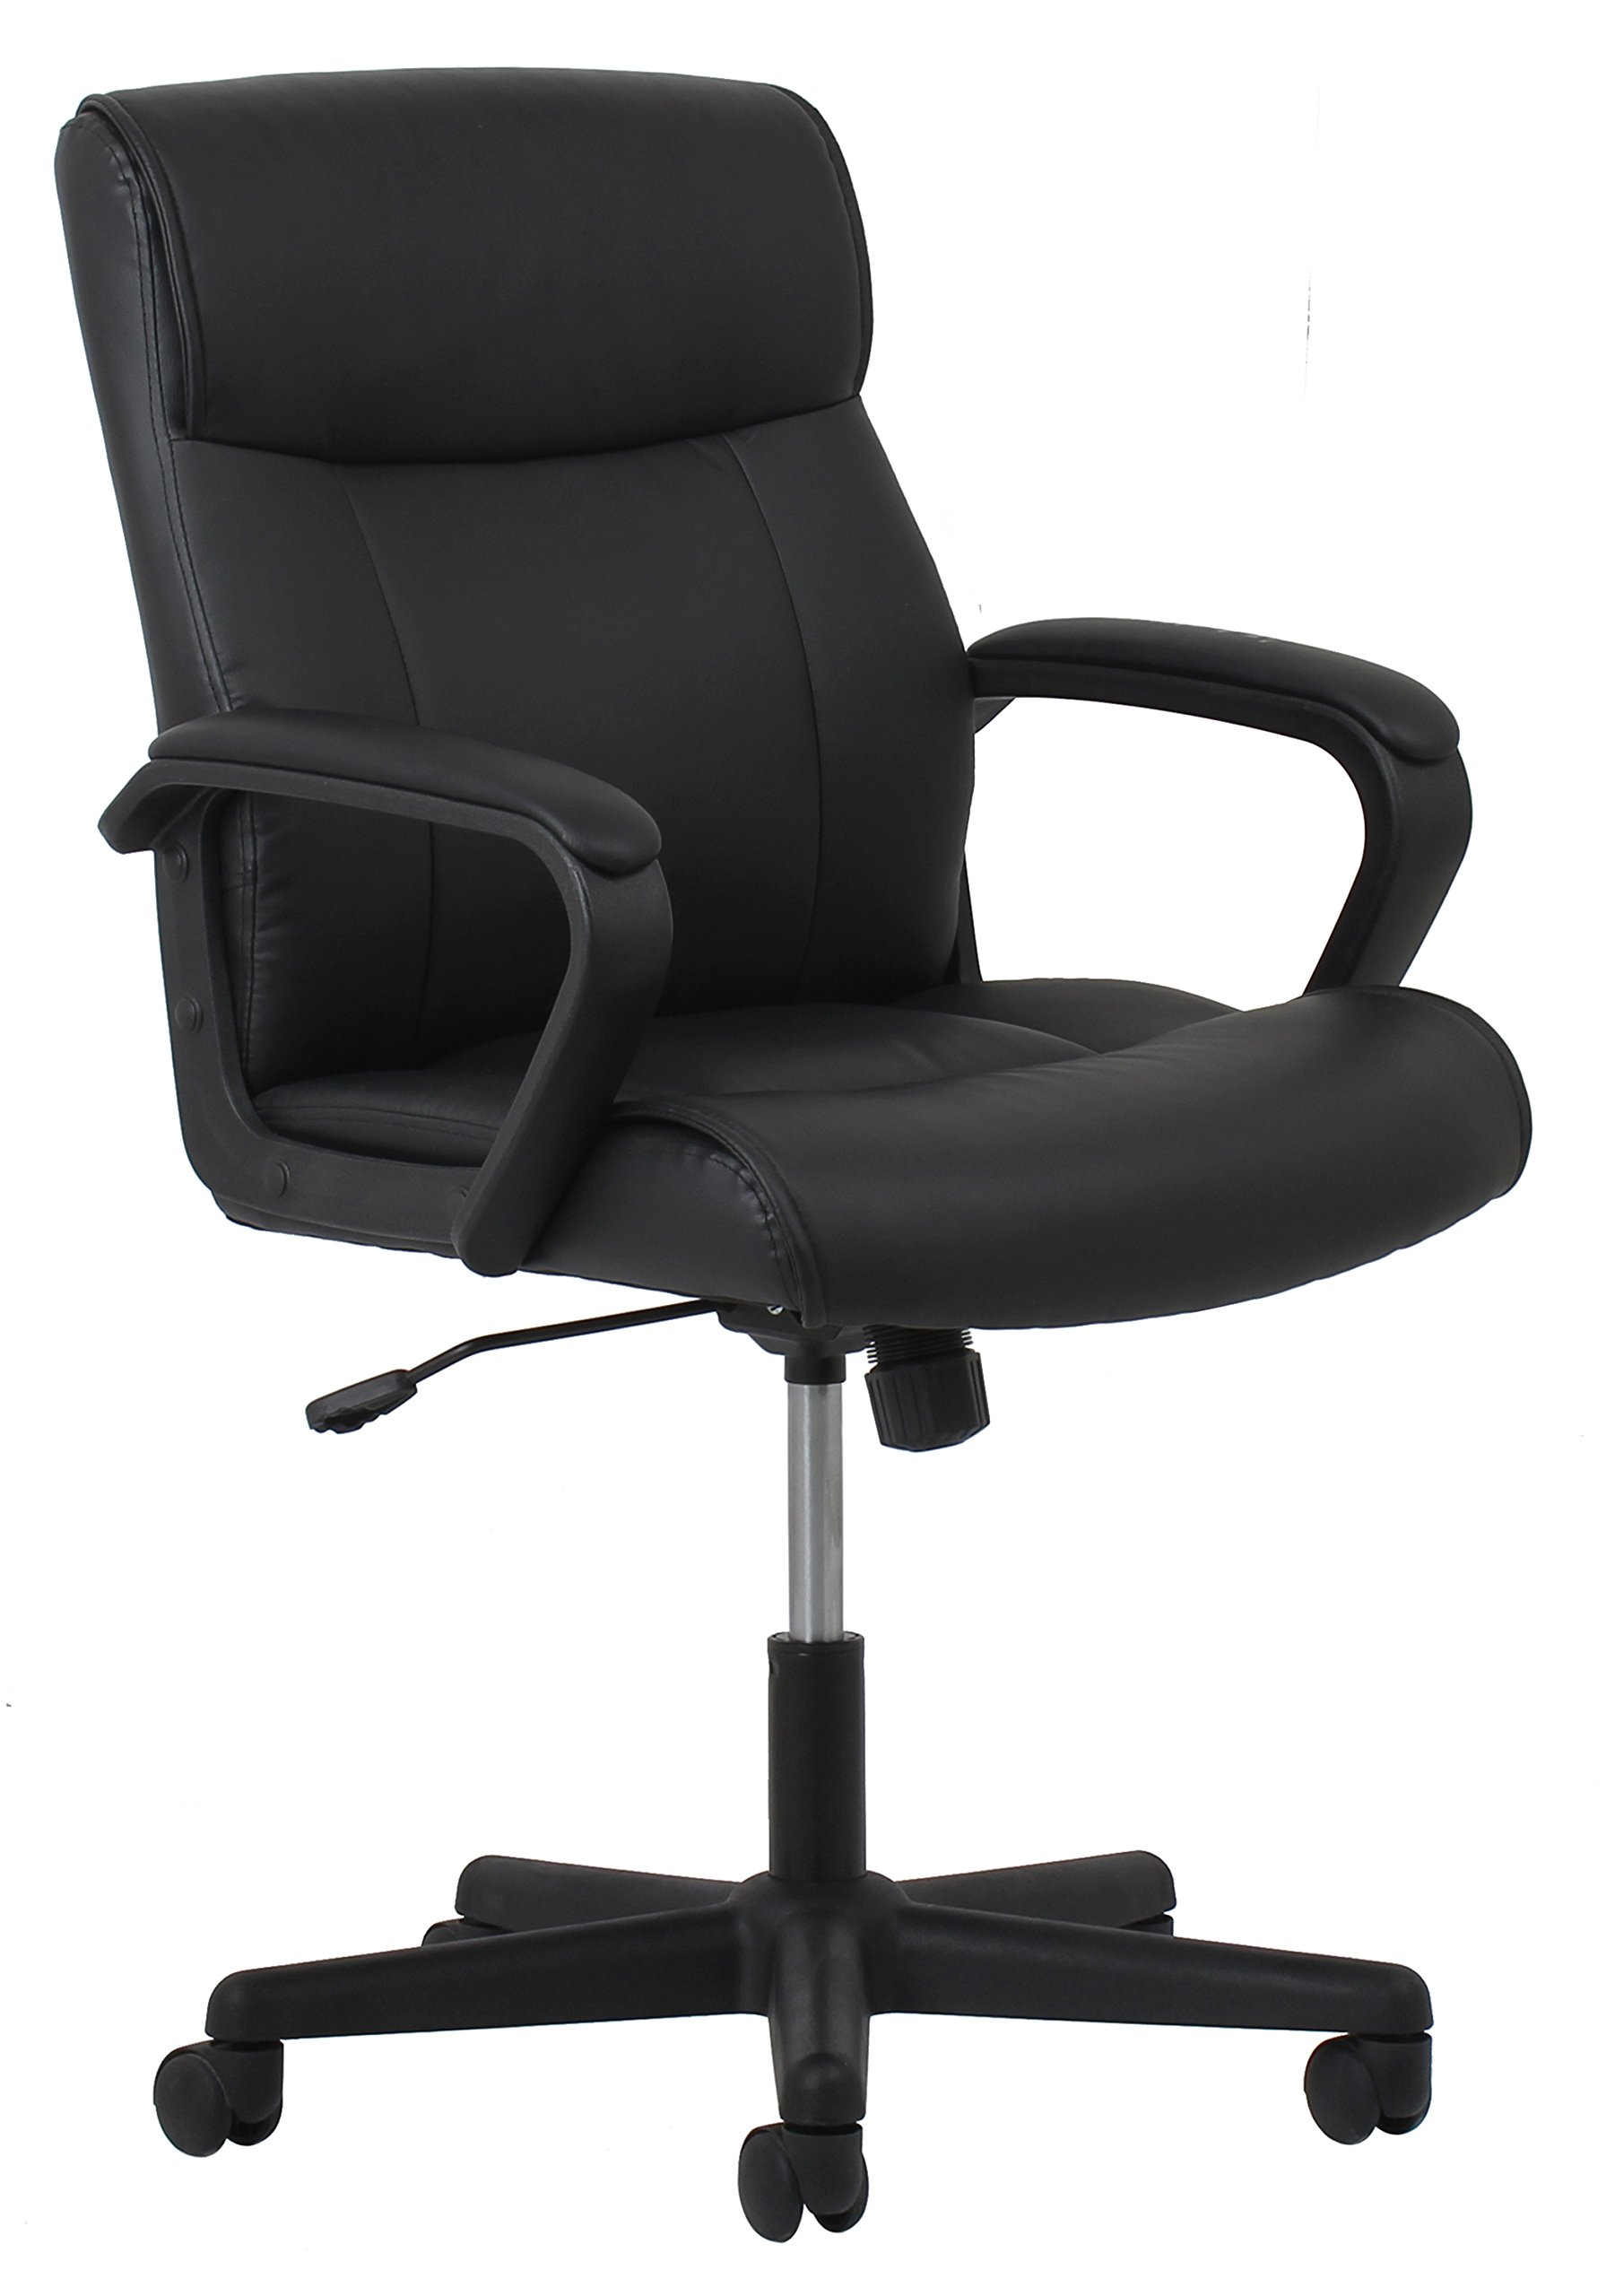 OFM Essentials Leather Executive Office/Computer Chair - Ergonomic Swivel Chair, Black (ESS-6010)